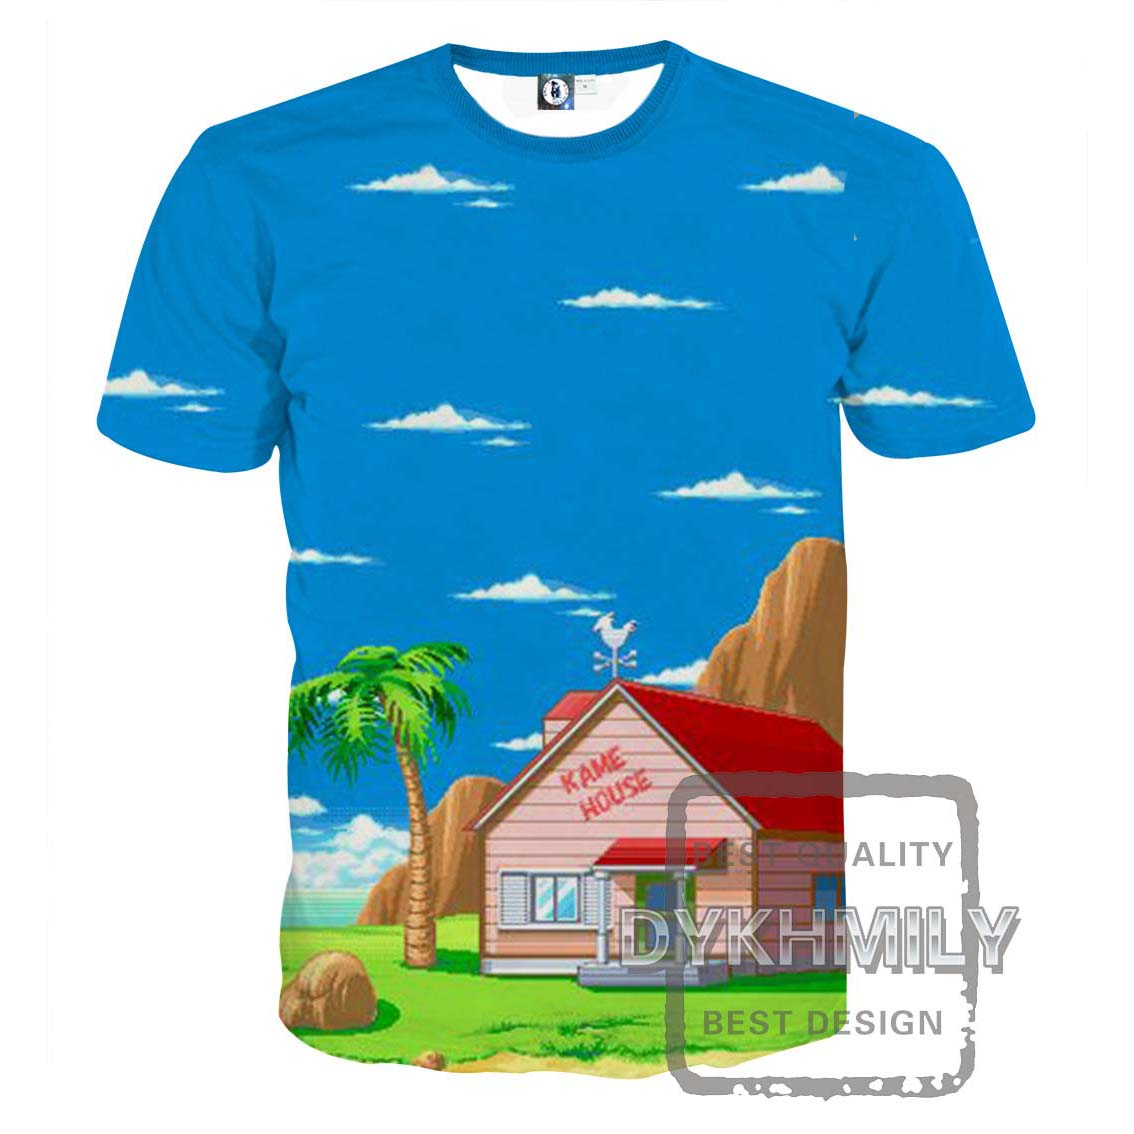 Design t shirt price - Dykhmily 2017 Summer New Arrivals Dragon Ball Z 3d Print Kame House Funny T Shirts Fashion